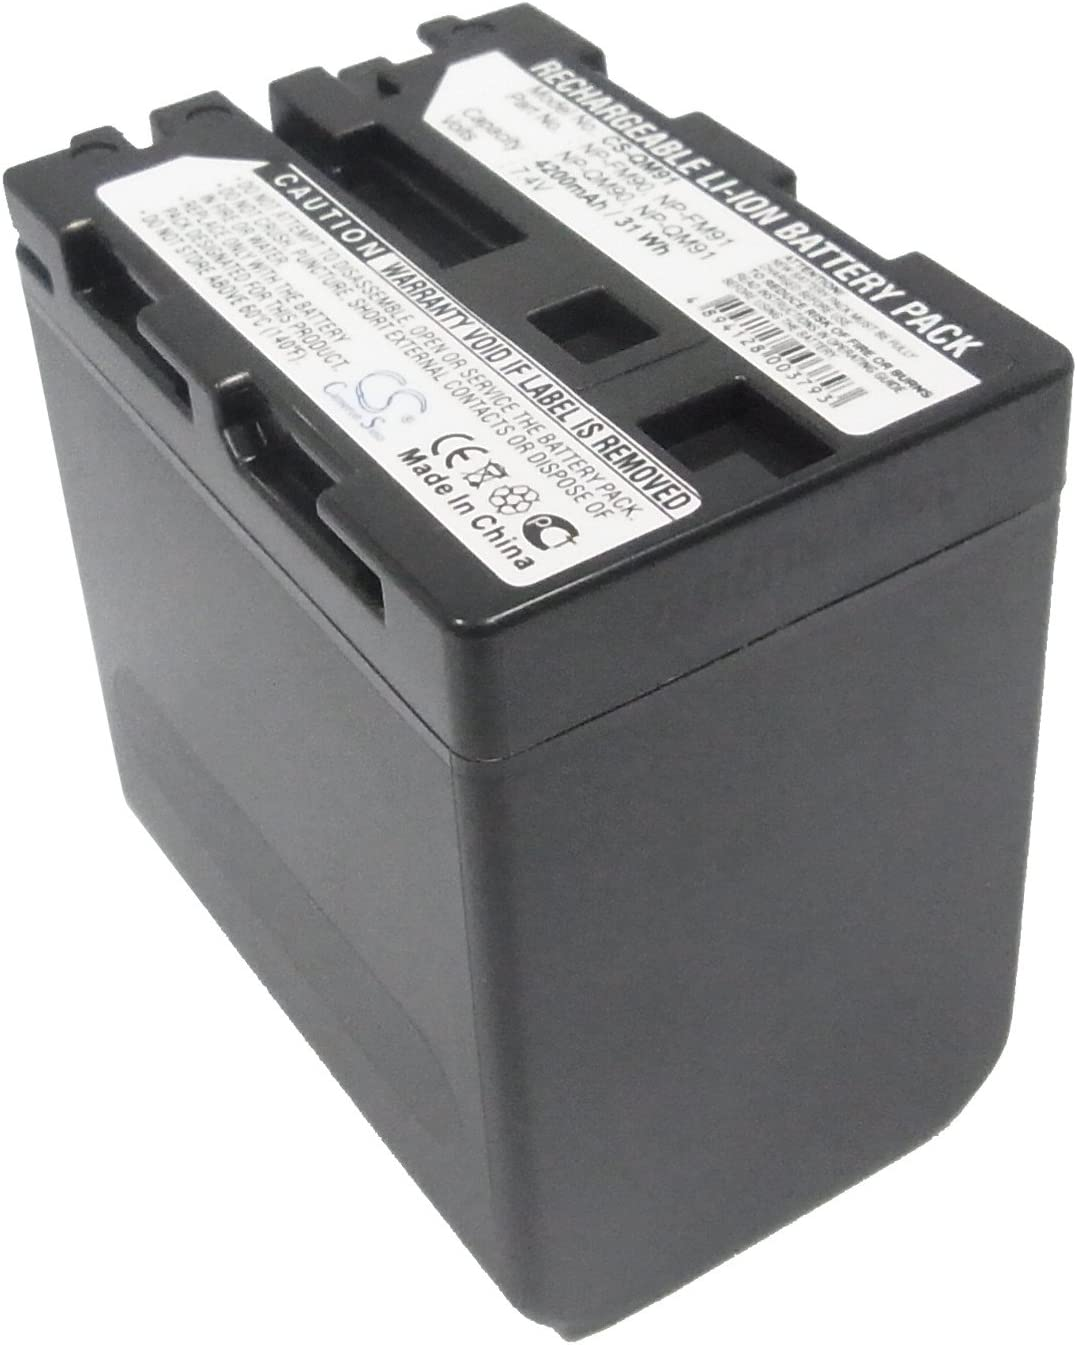 CCD-TRV128 CCD-TRV108 CCD-TRV318 7.4v 4200mAh Rechargeable Battery NP-FM91 Replacement for Sony CCD-TRV118